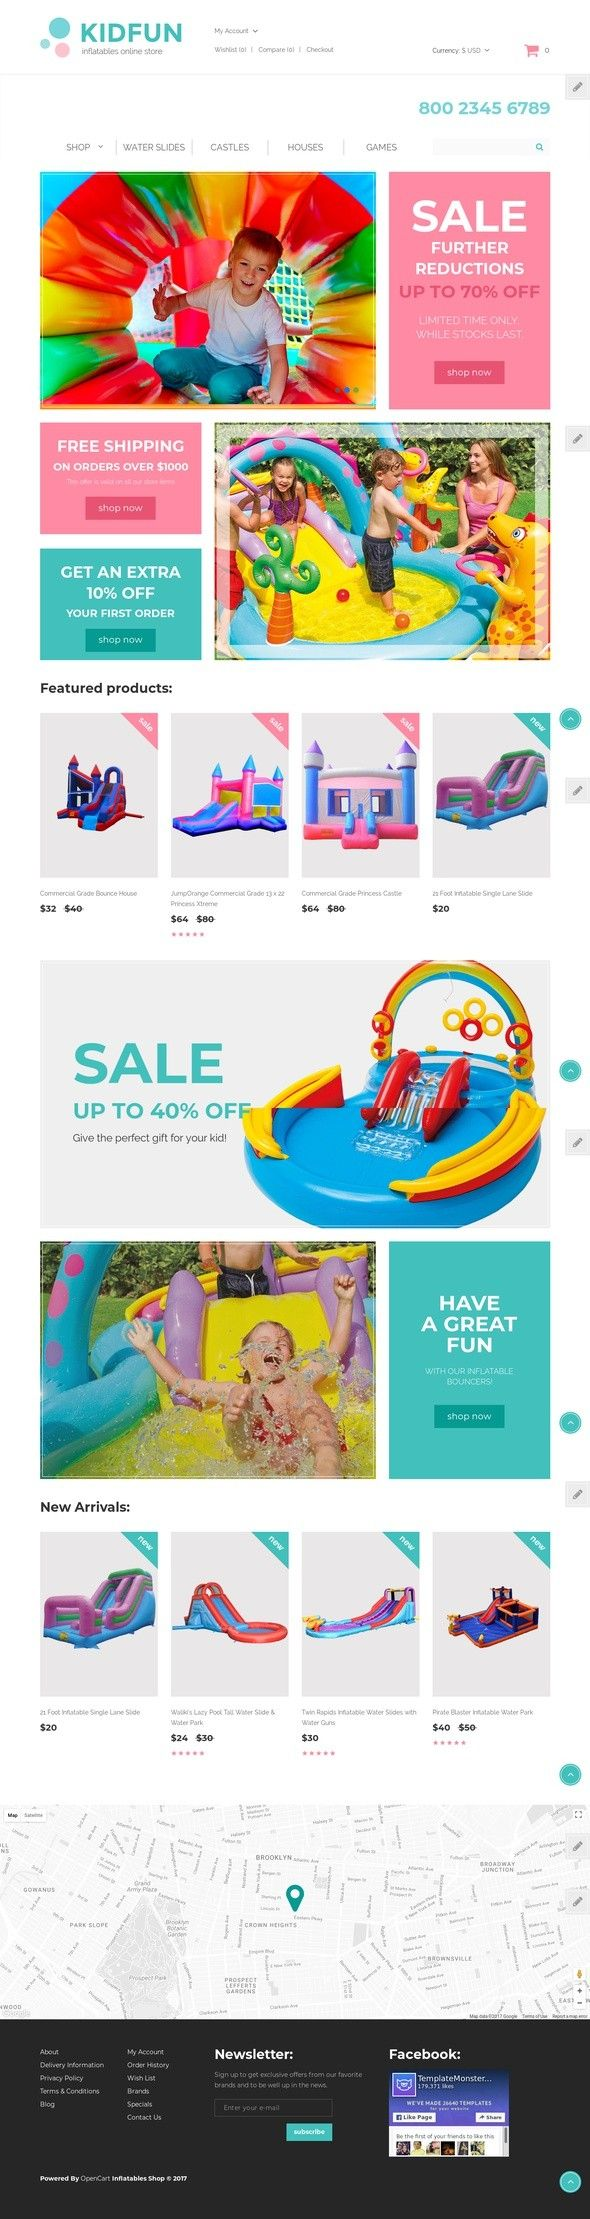 KidFun - Kids Toys & Games Store OpenCart Template E-commerce Templates, OpenCart Templates, Home & Family, Family Templates, Kids & Children, Baby Store Templates KidFun is a well-documented Children's Toys OpenCart Template custom made for children's inflatable toys and games stores. Showcase your products in a pro way with a gallery slider. Use the ...